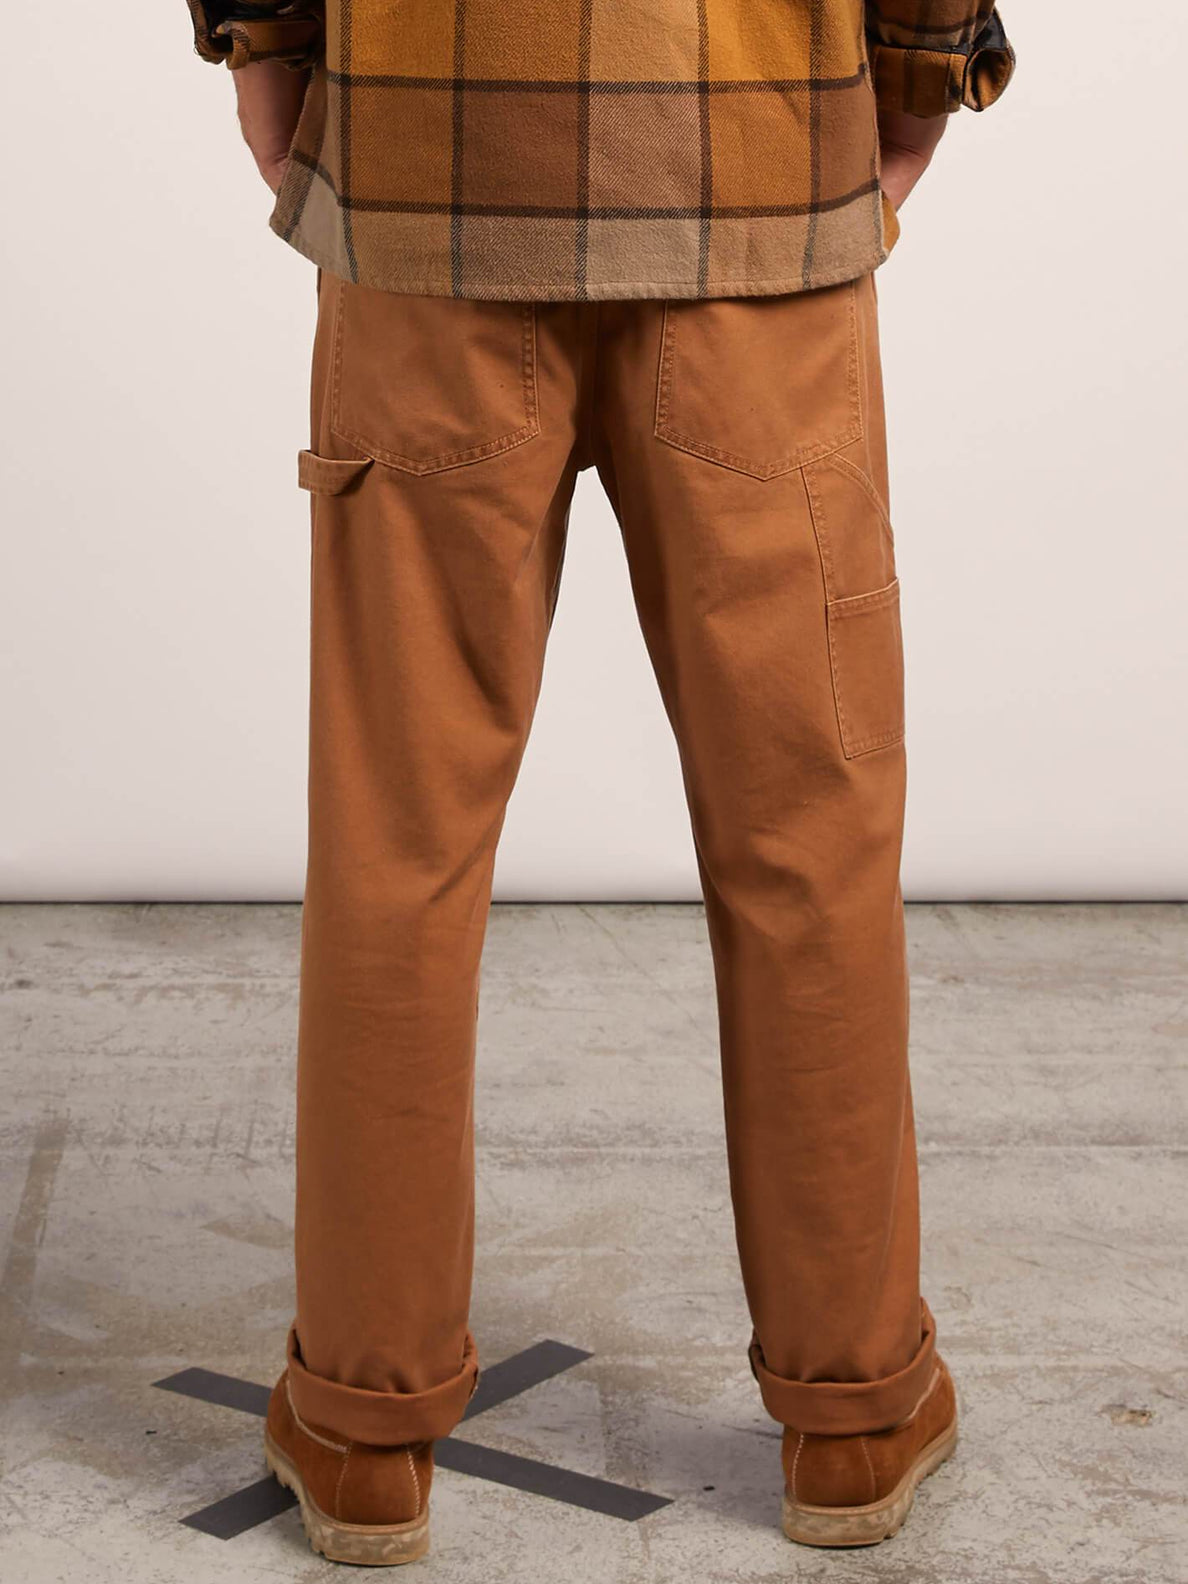 Vsm Whaler Regular Pants In Camel, Back View